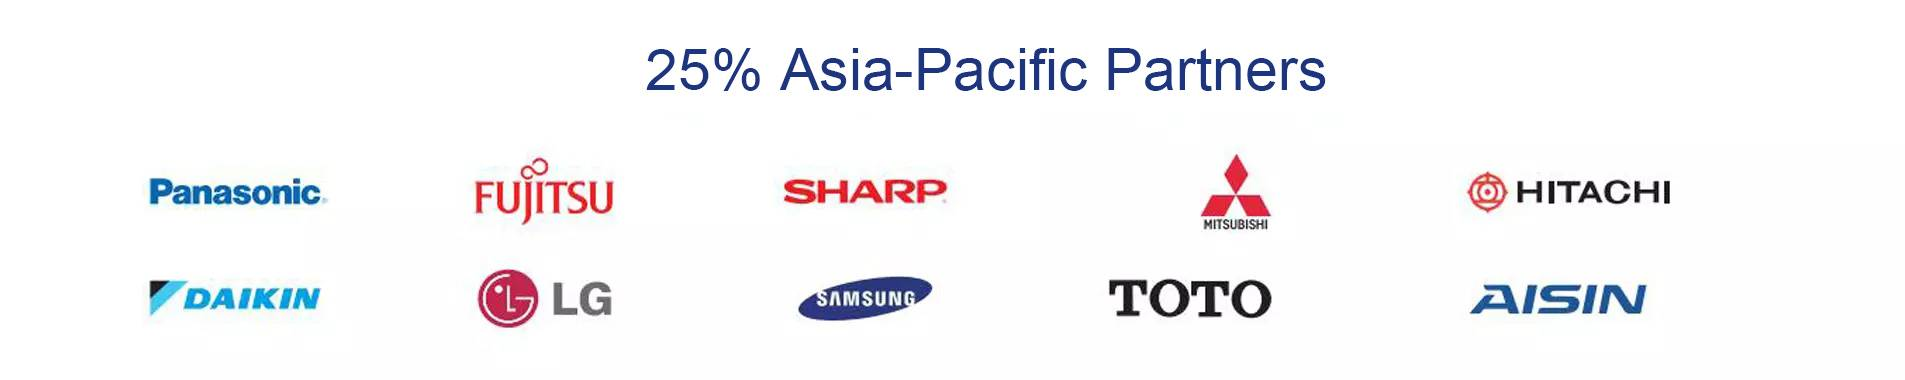 Asia-Pacific Partners-1